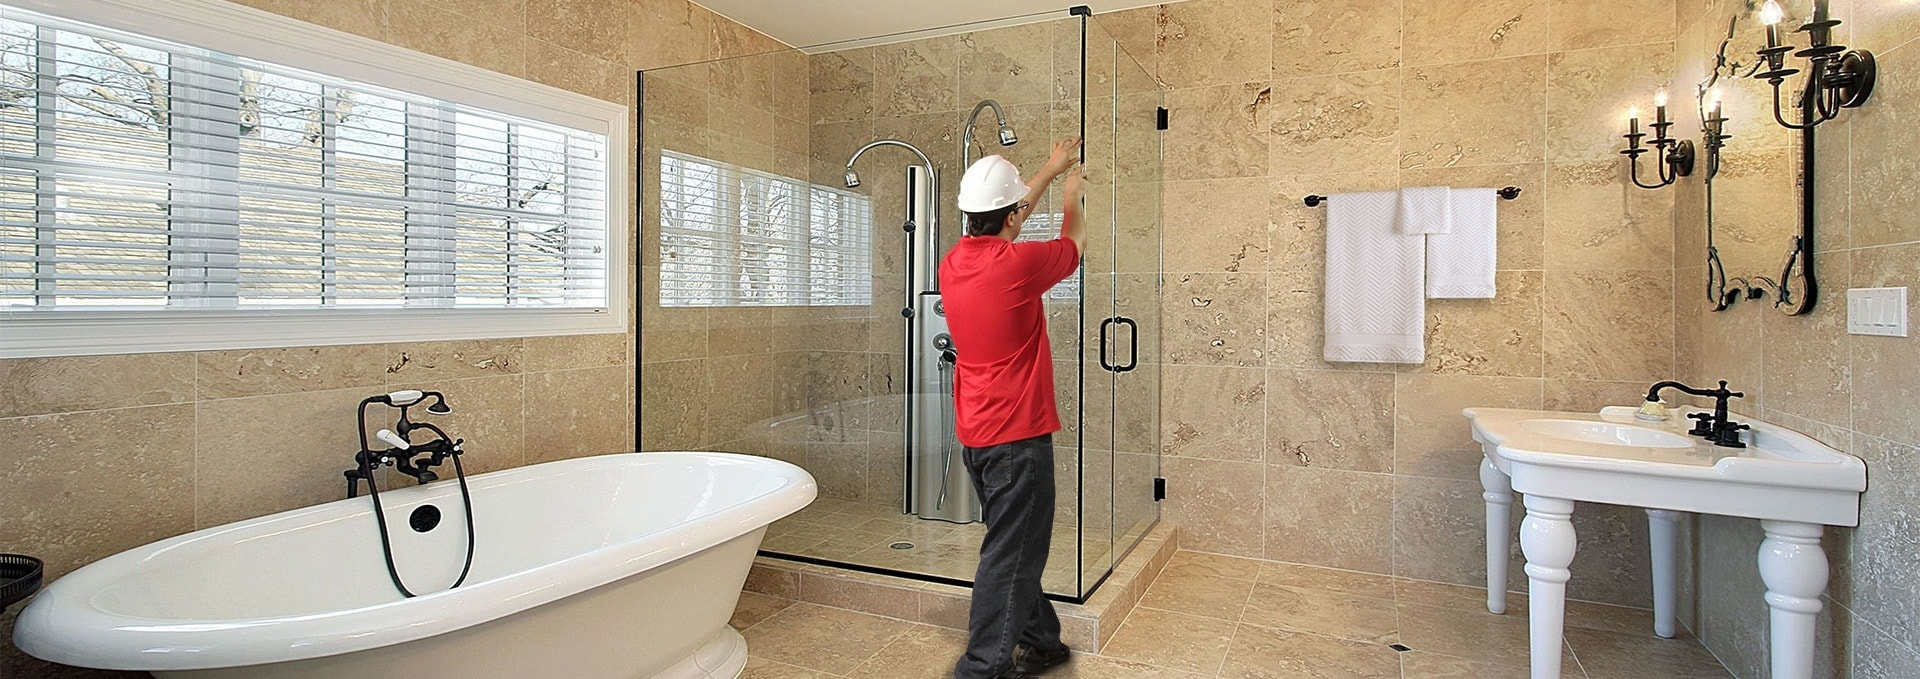 Salient Mirror Manassas Va Dulles Glass Mirror Promotional Code Installation Services Shower Mirrors Installed Dc Dulles Glass Dulles Glass houzz-03 Dulles Glass And Mirror